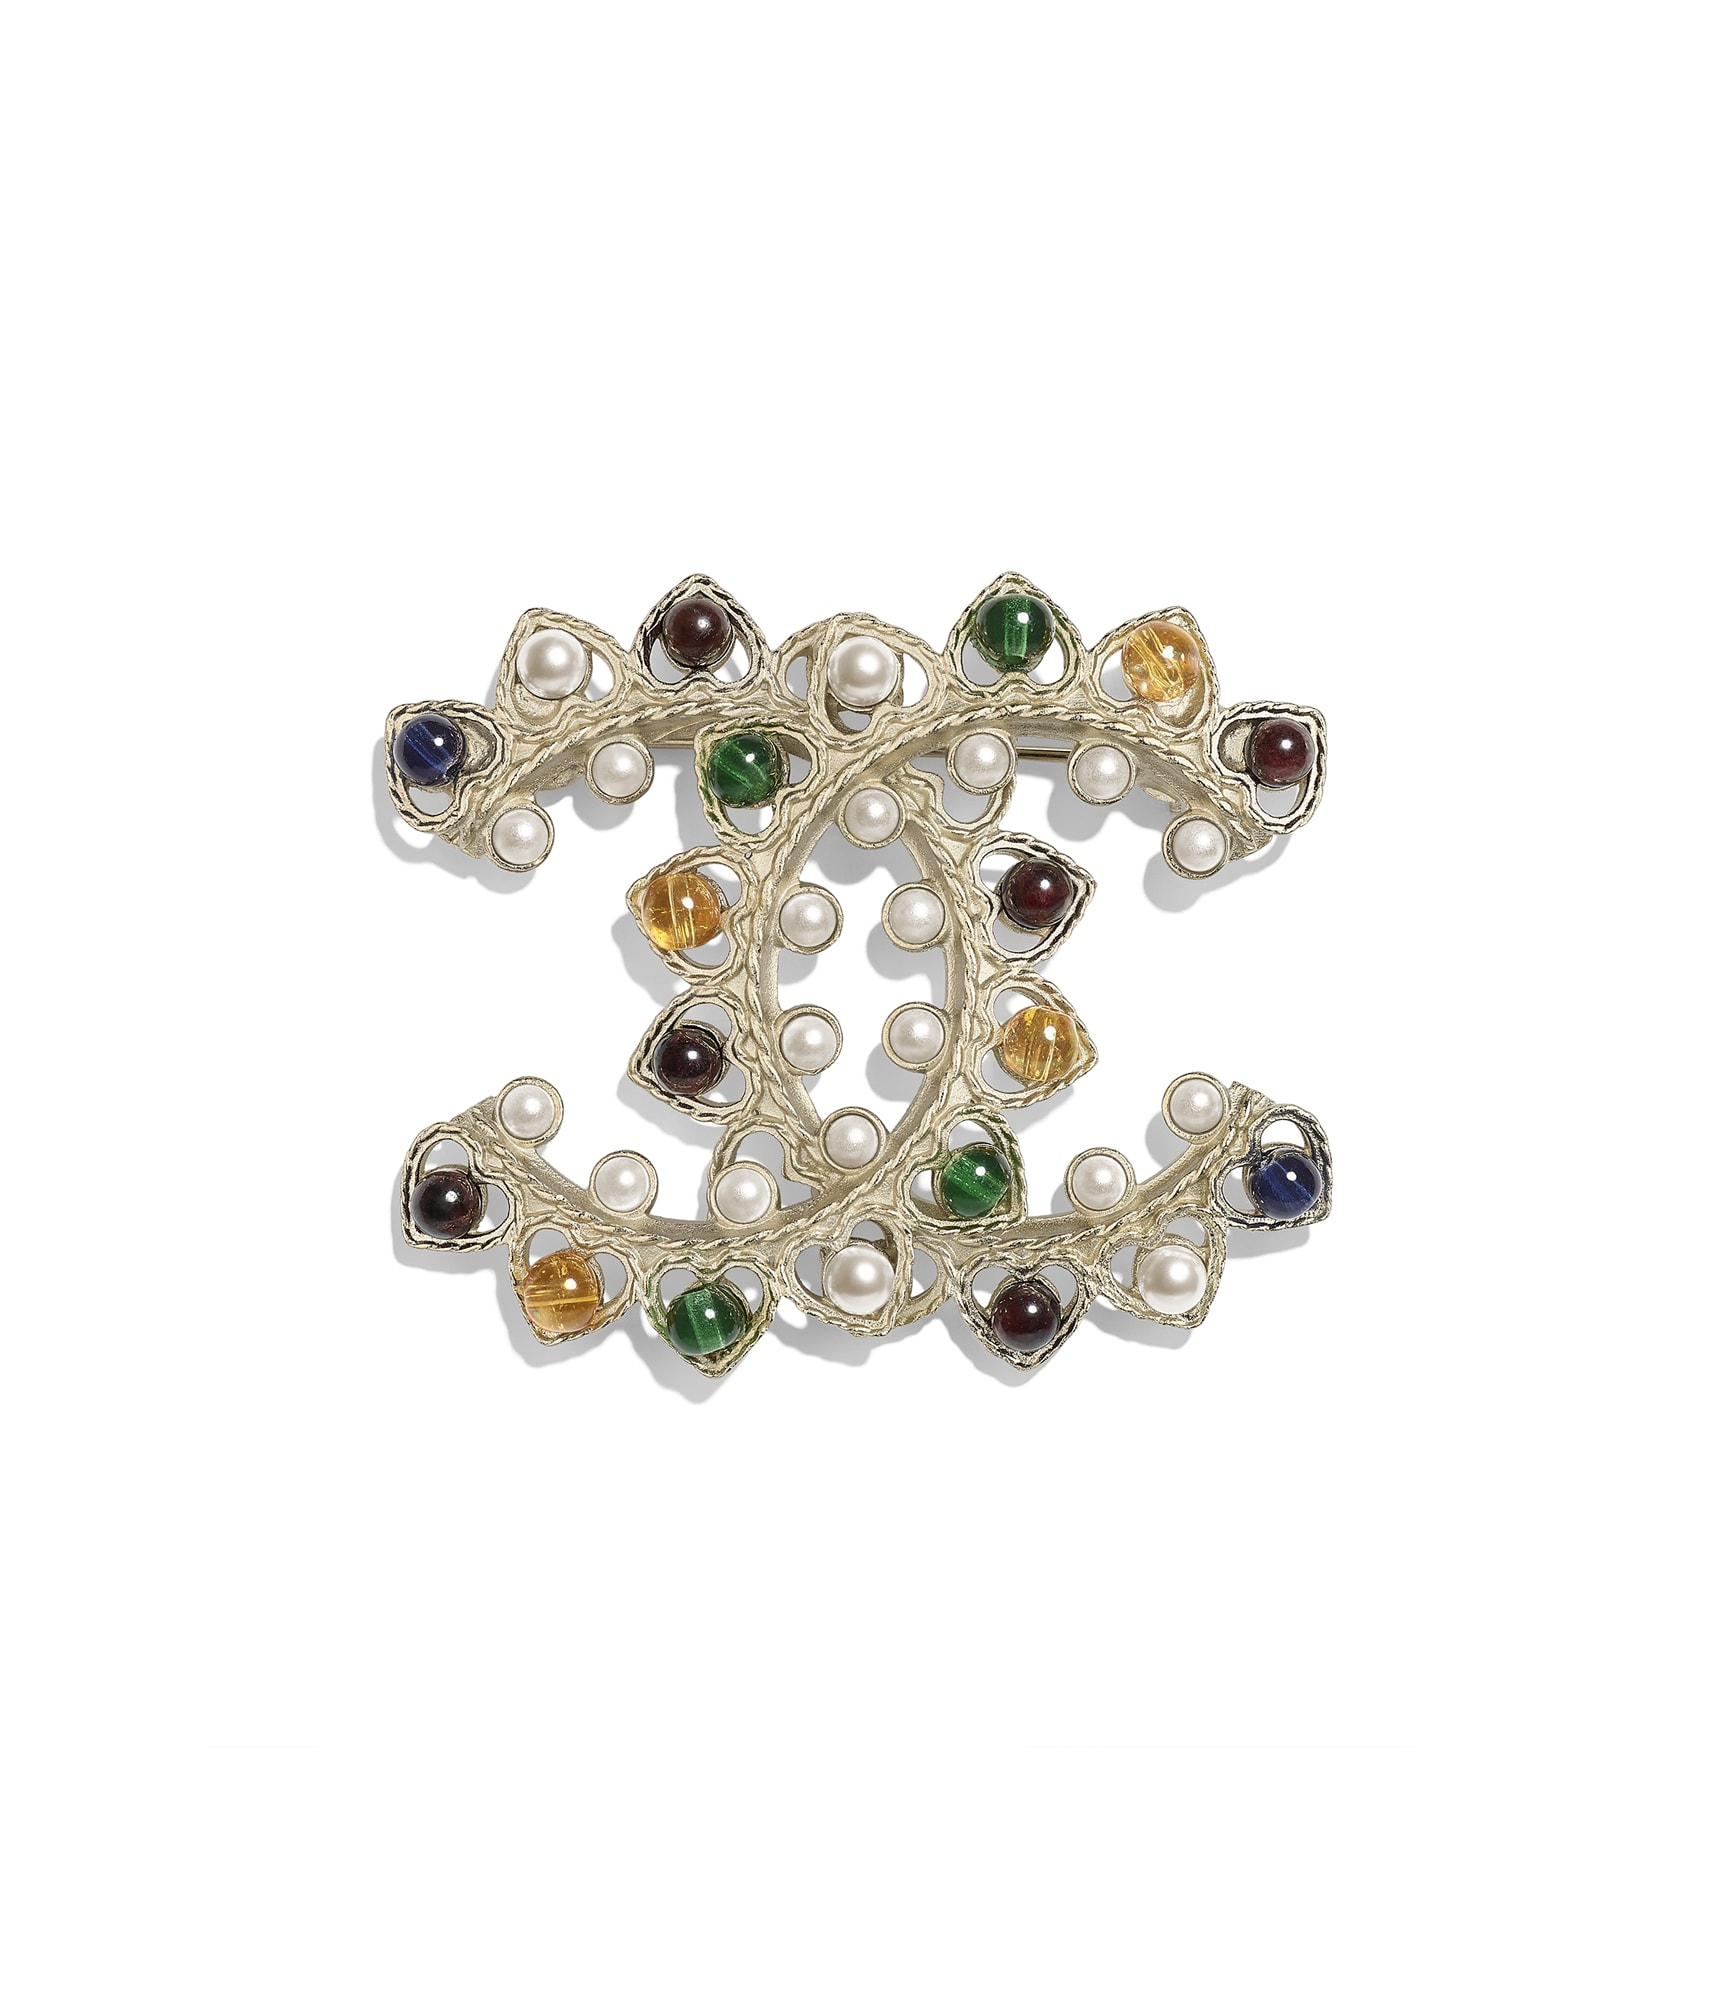 f9ffd47cf Brooches - Costume Jewelry - CHANEL